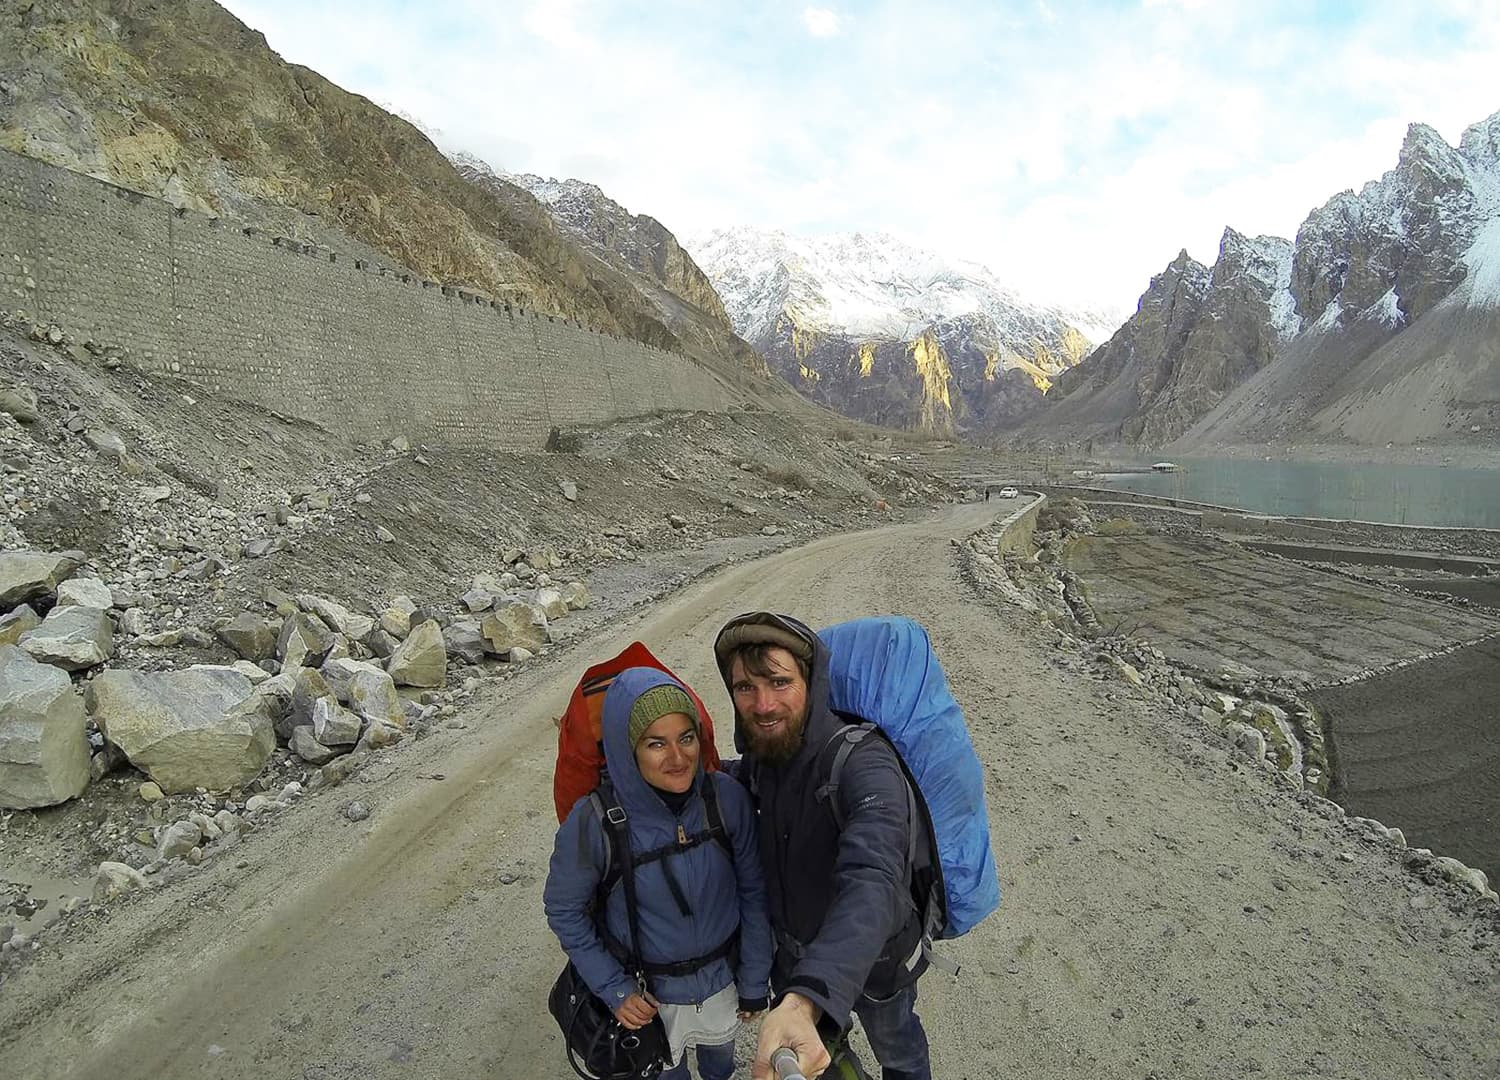 Walking along the KKH near Attabad Lake.